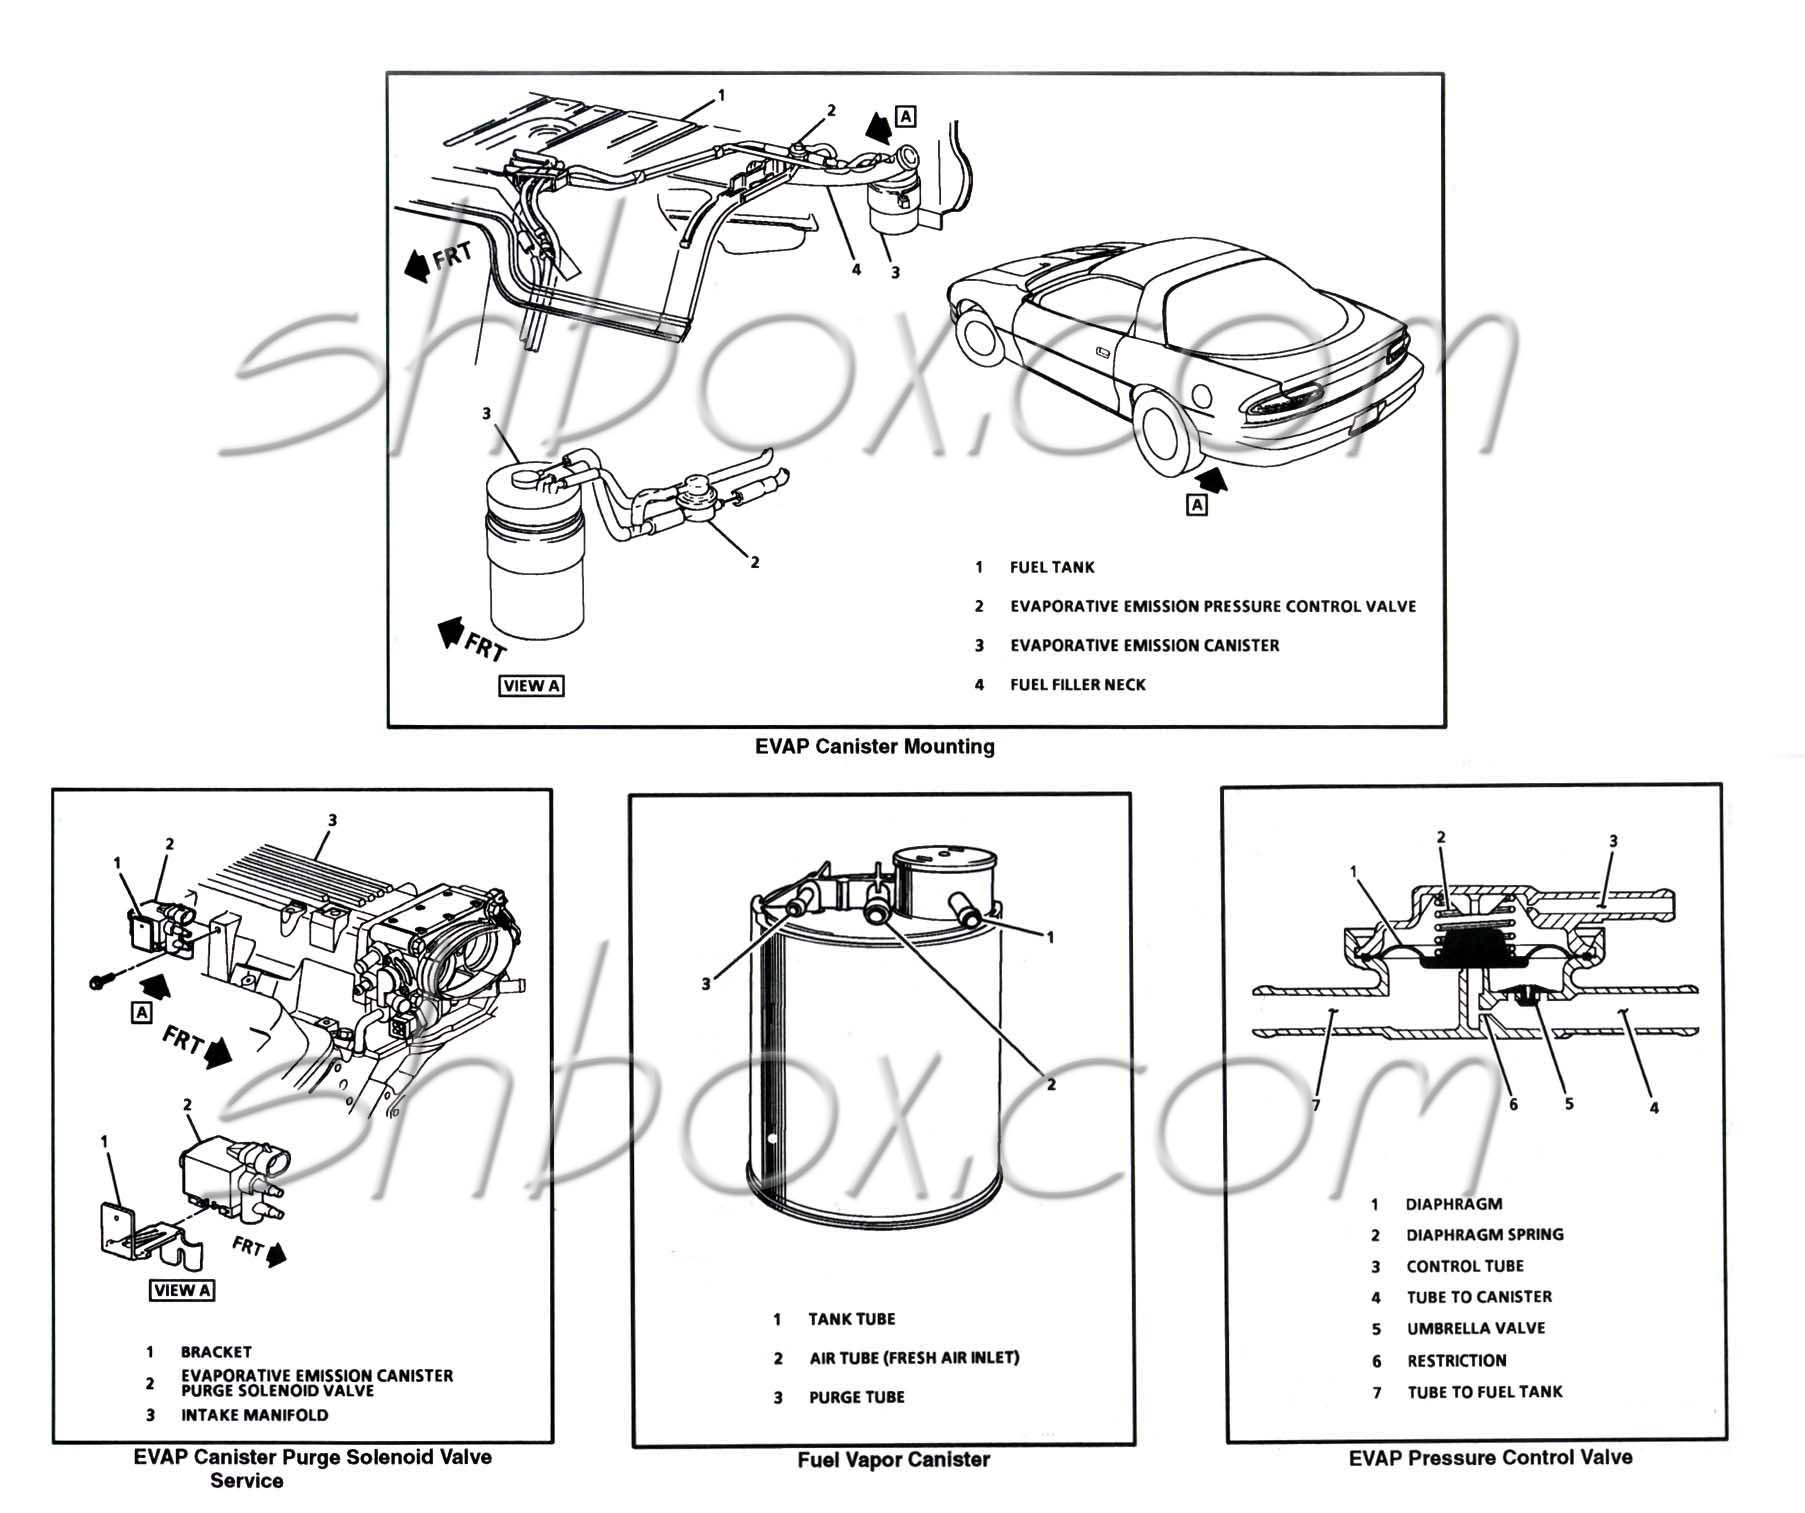 P 0900c1528003ce55 likewise Water Temperature Sending Unit Location in addition RepairGuideContent further Duramax Engine Diagram as well RepairGuideContent. on chevy s10 emissions control diagram